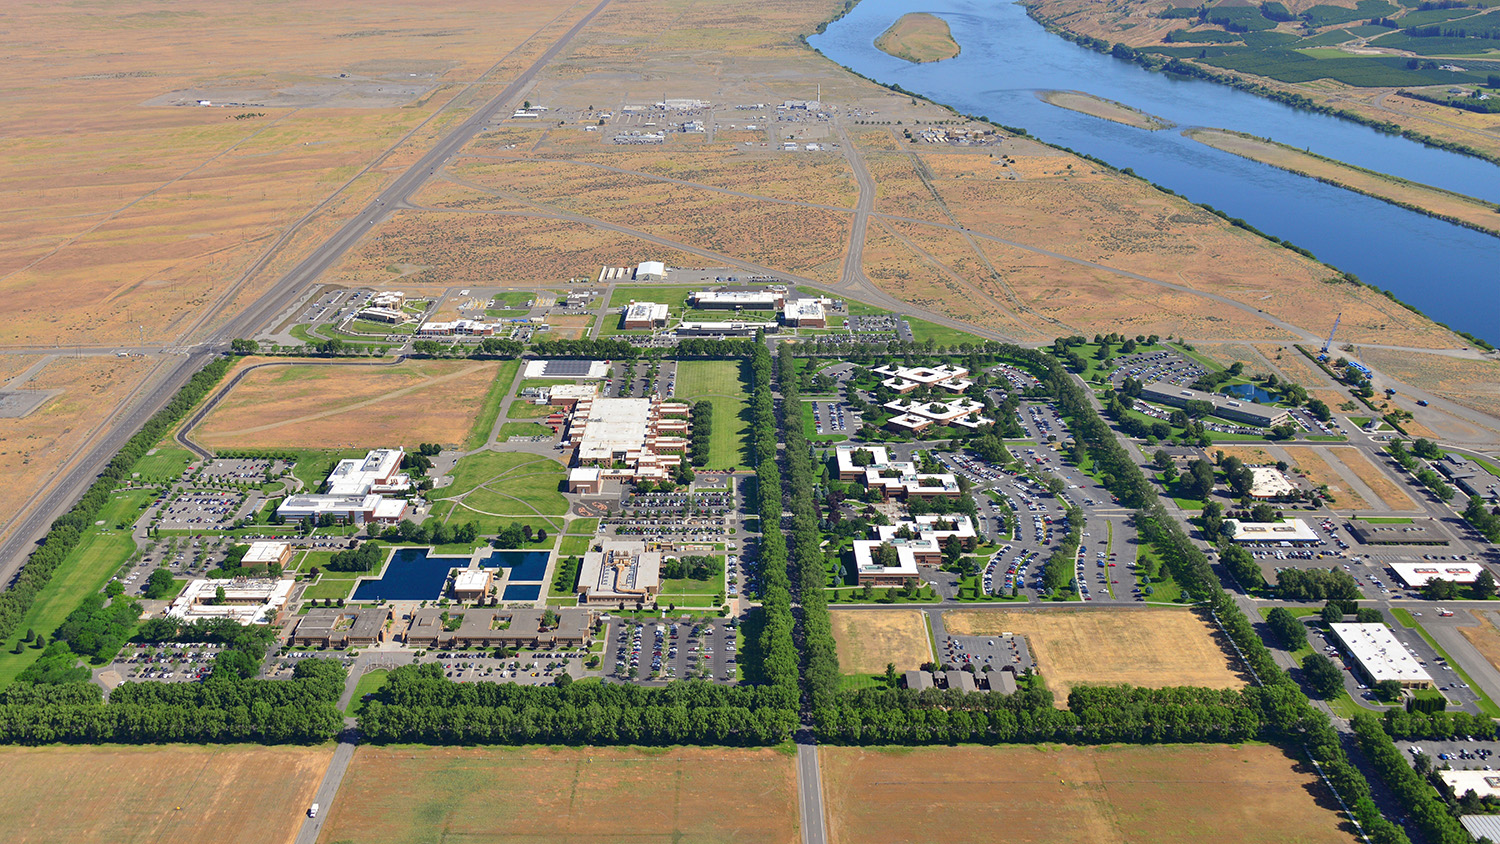 An aerial view of the Richland Campus at the Pacific Northwest National Laboratory.